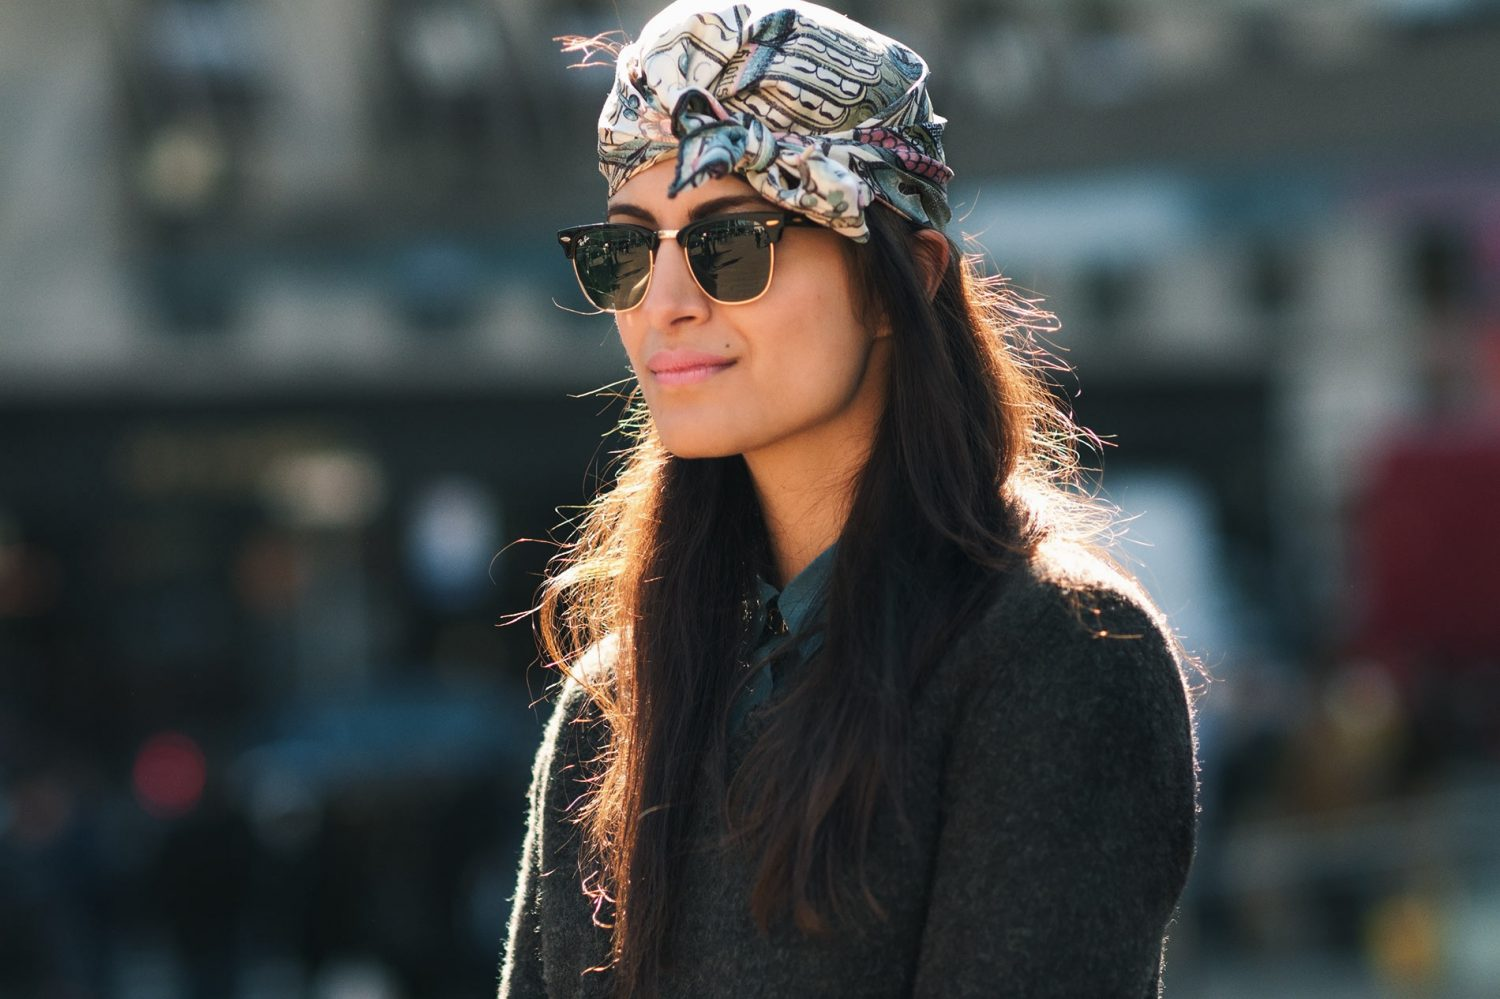 Preetma Singh at New York Fashion Week Fall/Winter 2011